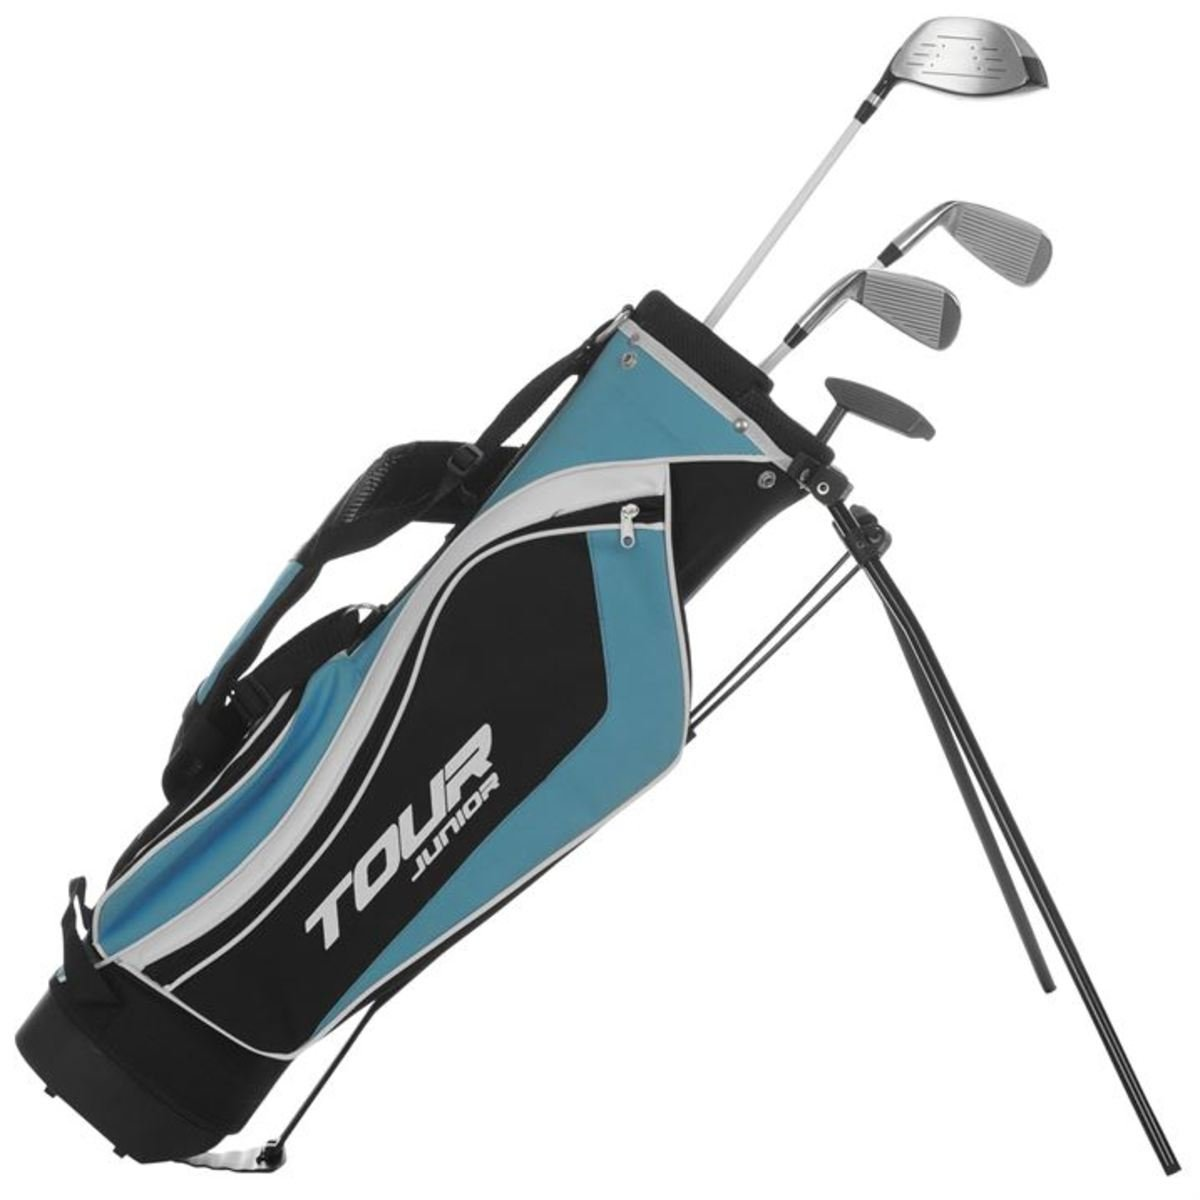 TOUR - JUNIOR GOLF SET 5-8 YEARS RIGHT HAND